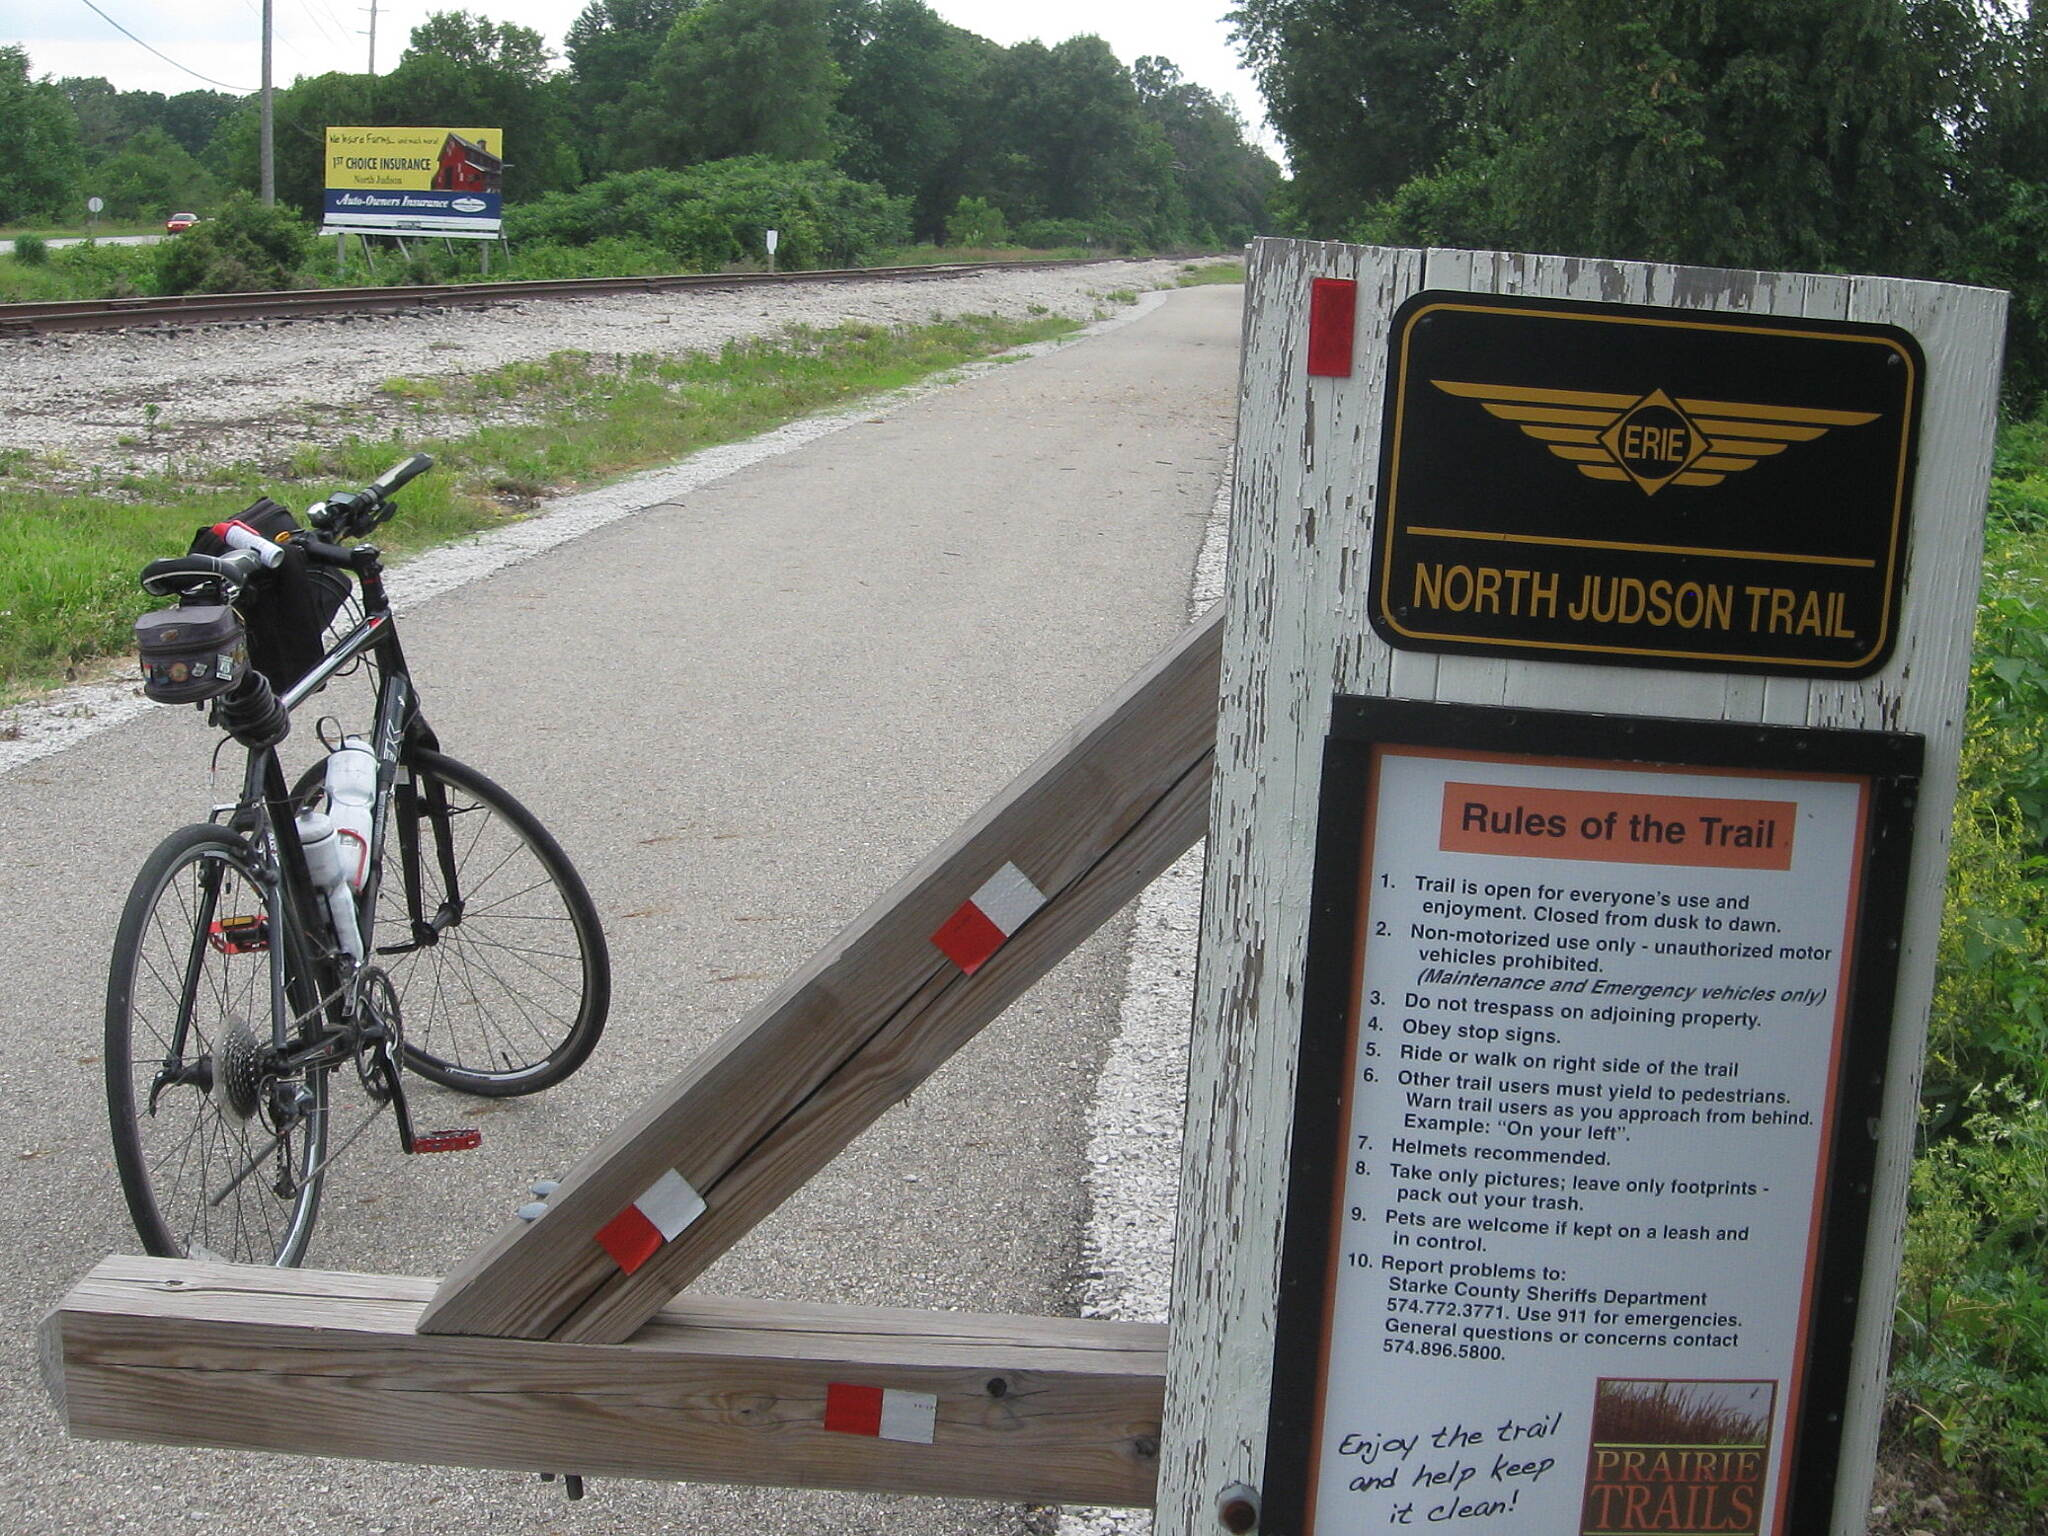 North Judson Erie Trail NJET Sign